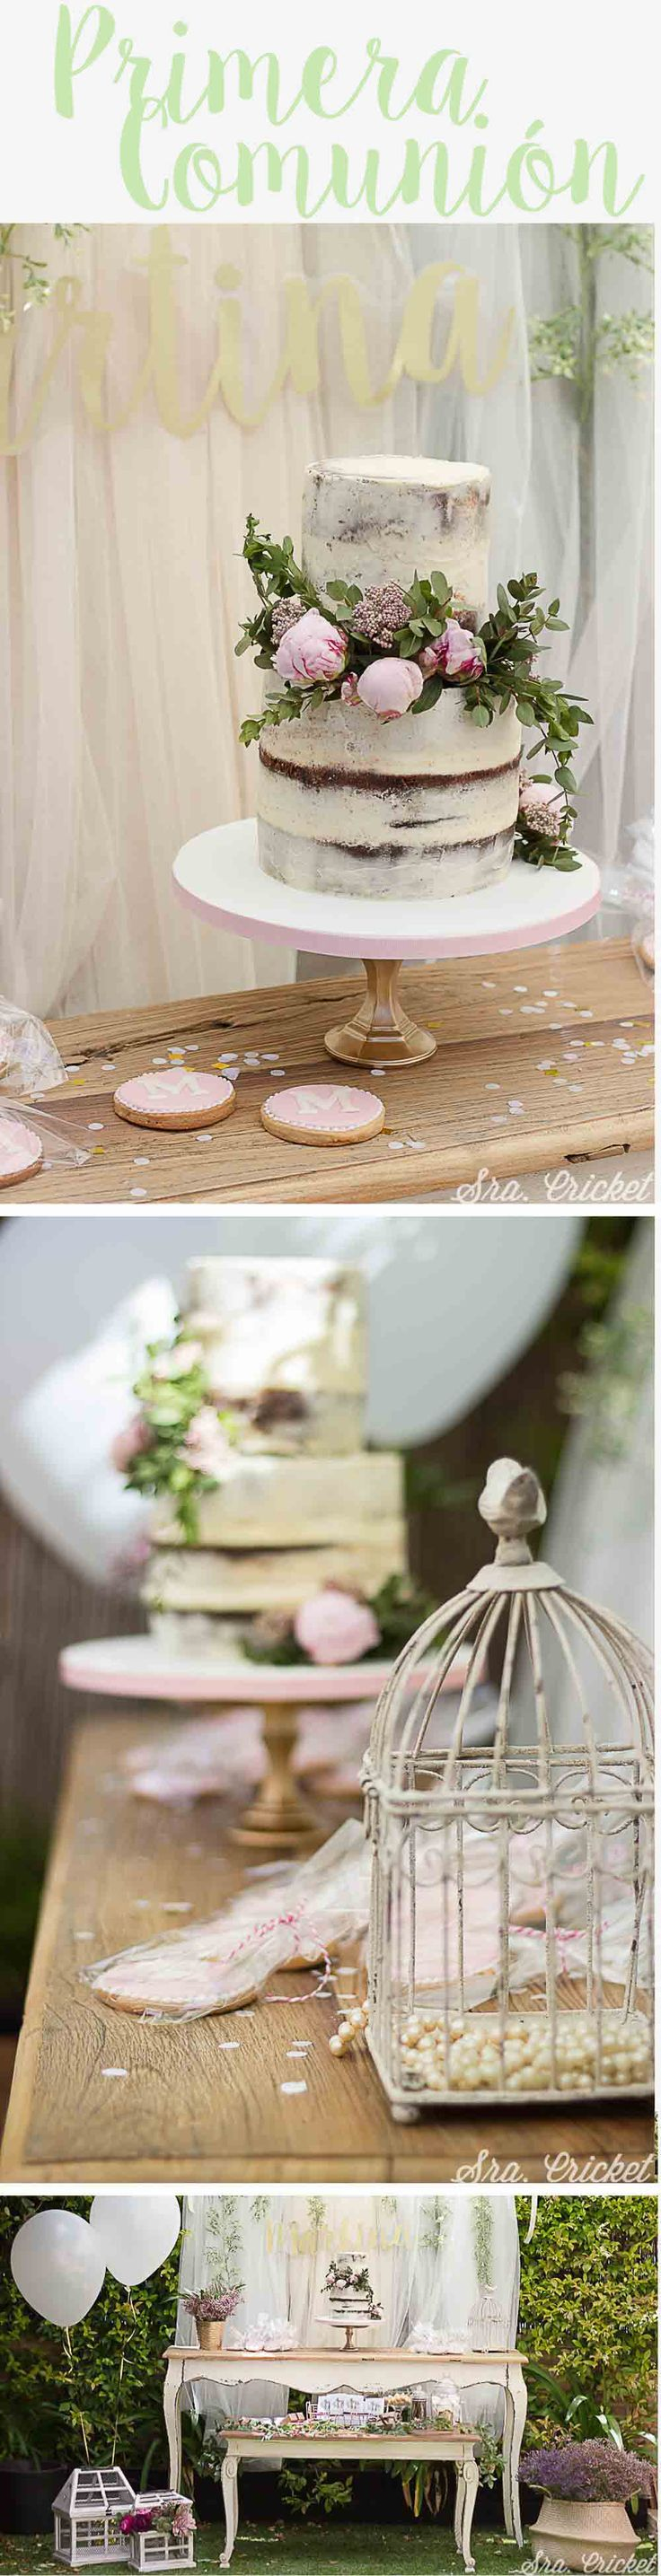 Primera comunión #firstcommunion #decoracionparacomunion #ideasparacomunion #nakedcake #comunion #partydecoration #party #communion #ideas #fiestadecomunion Party Decoration, Table Decorations, Mesa Candy Bar, Cupcake Cookies, Cupcakes, Fitness And Beauty Tips, Muffin Bread, Diy Pins, First Communion